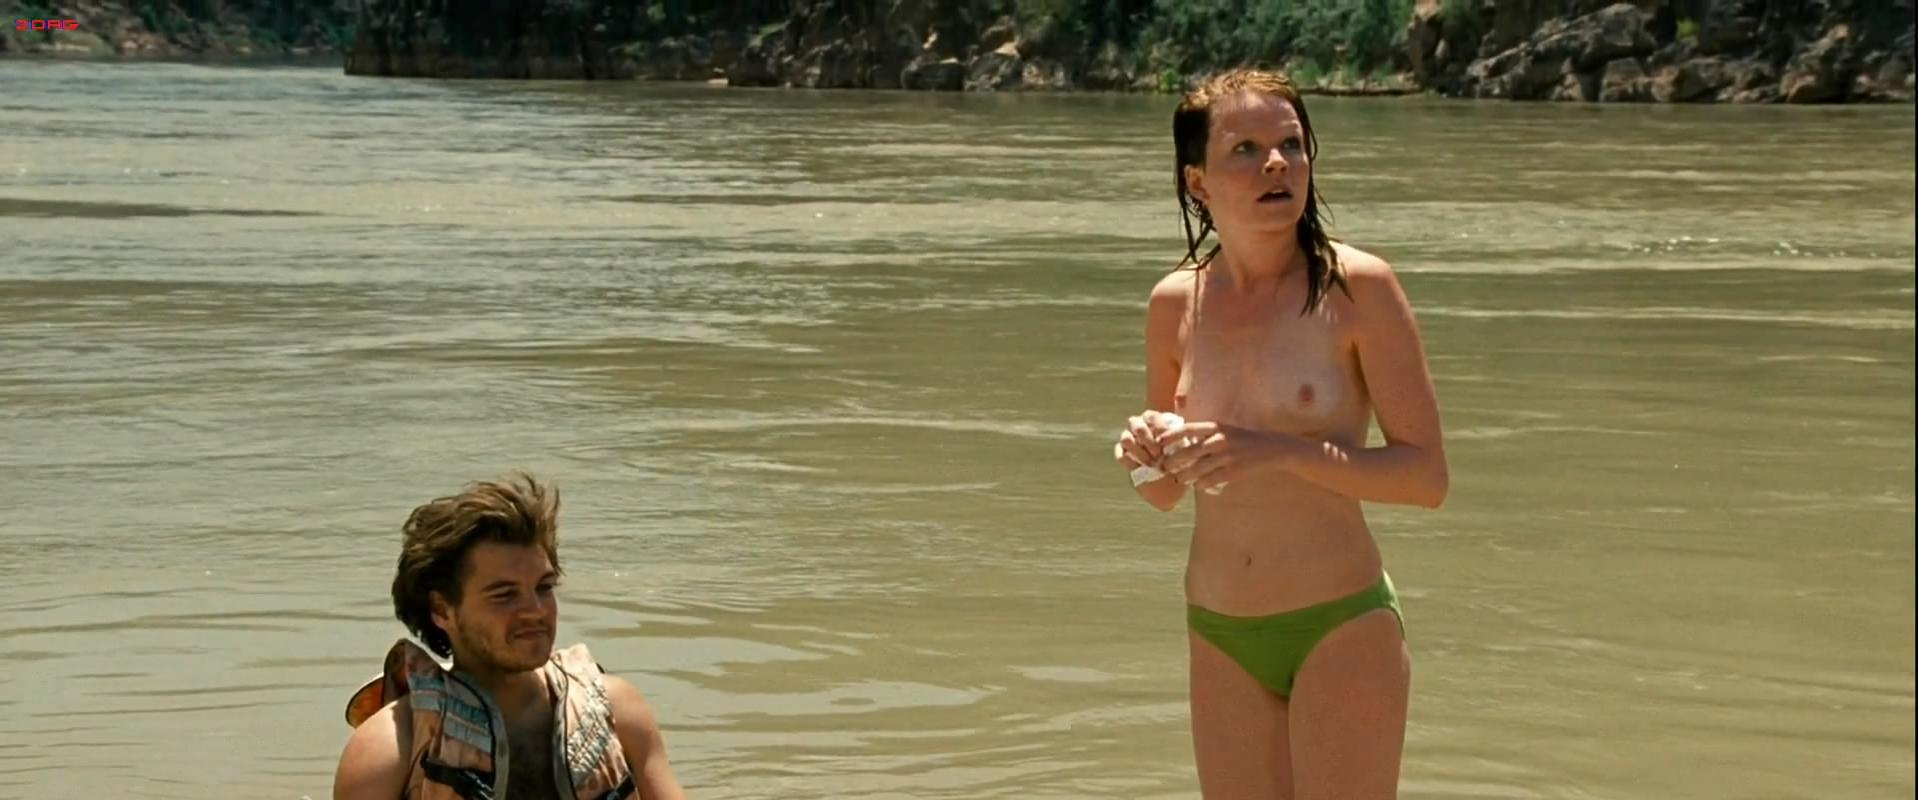 Into the wild nudity opinion you